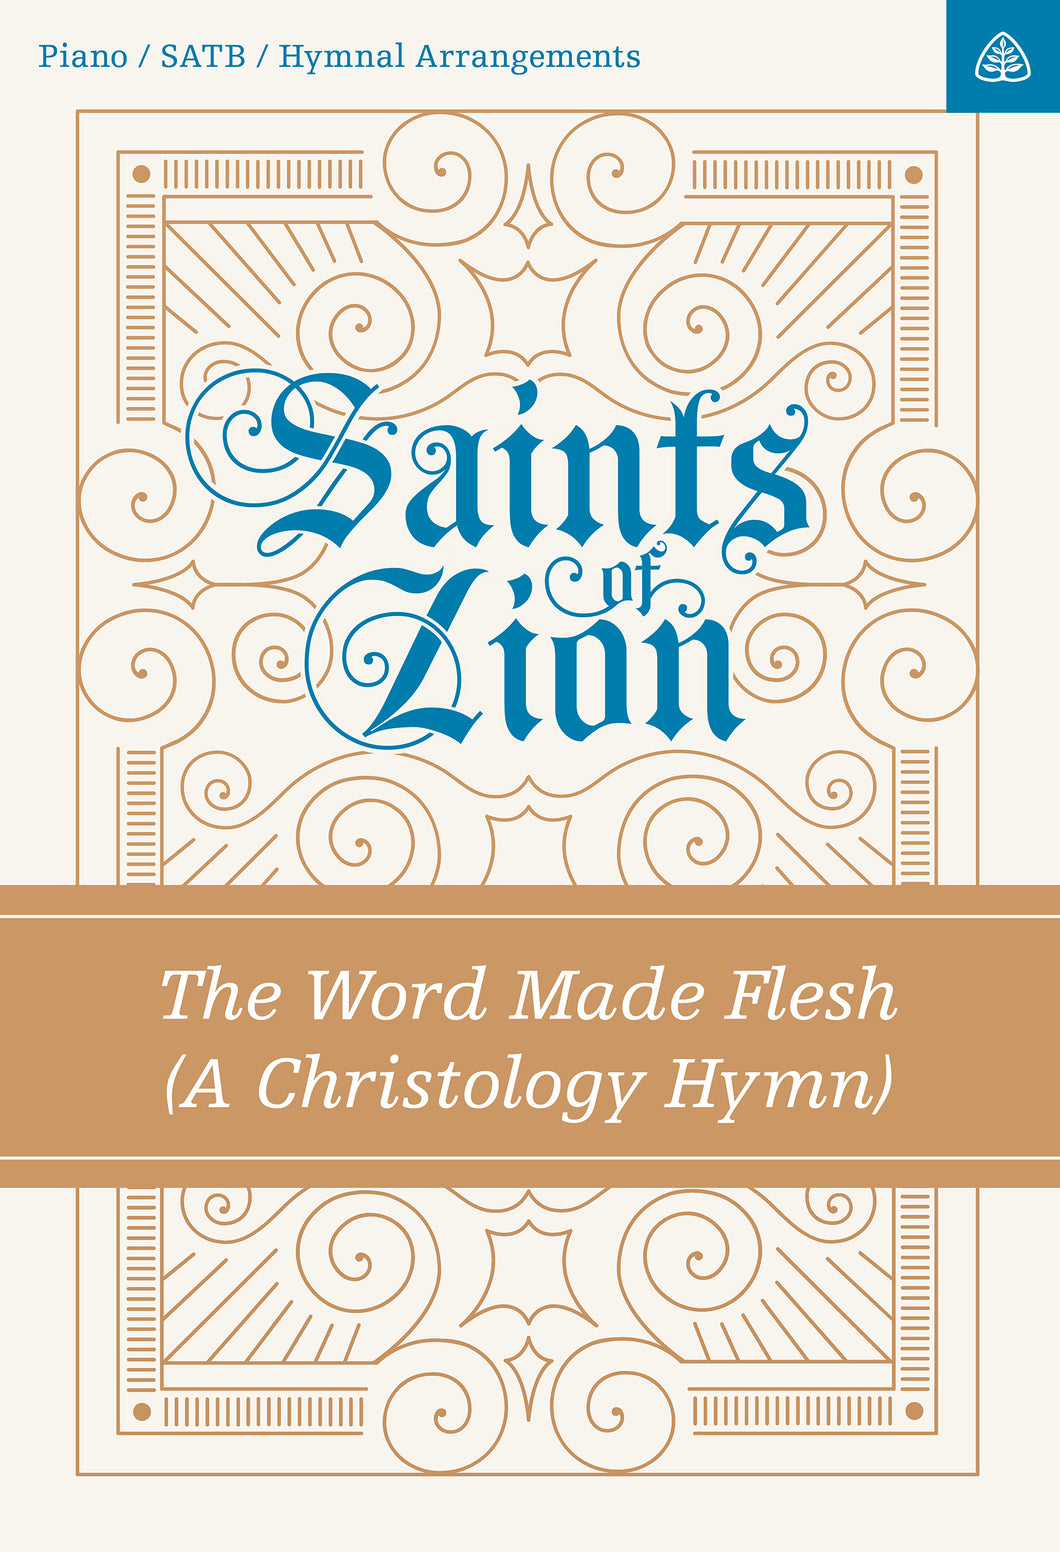 The Word Made Flesh (A Christology Hymn) — Sheet Music SATB Digital  (1 License)